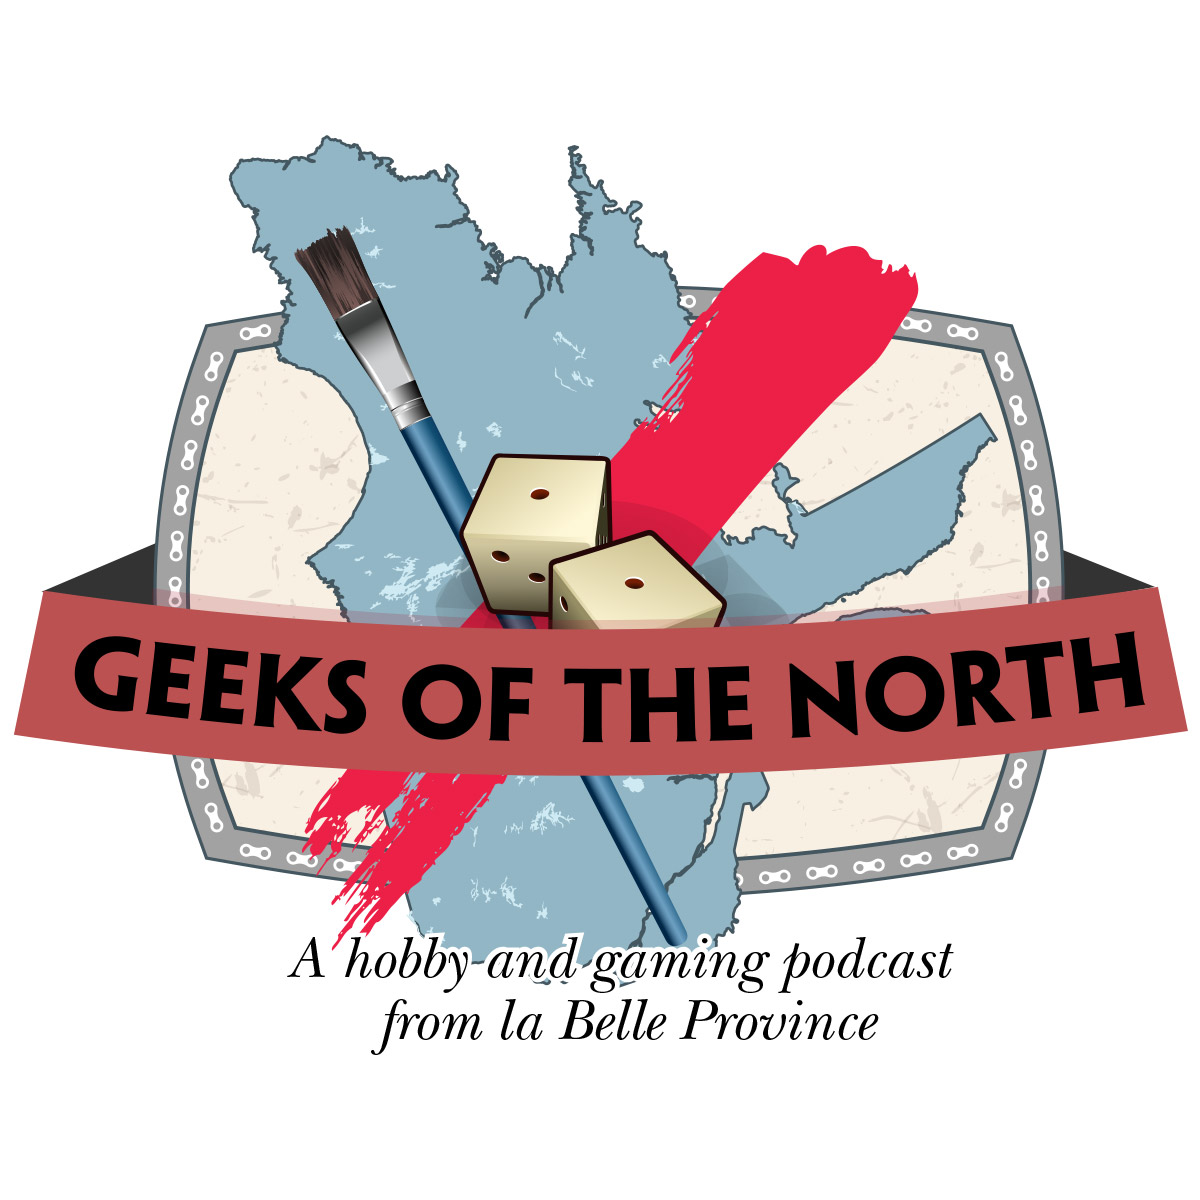 Geeks of the North